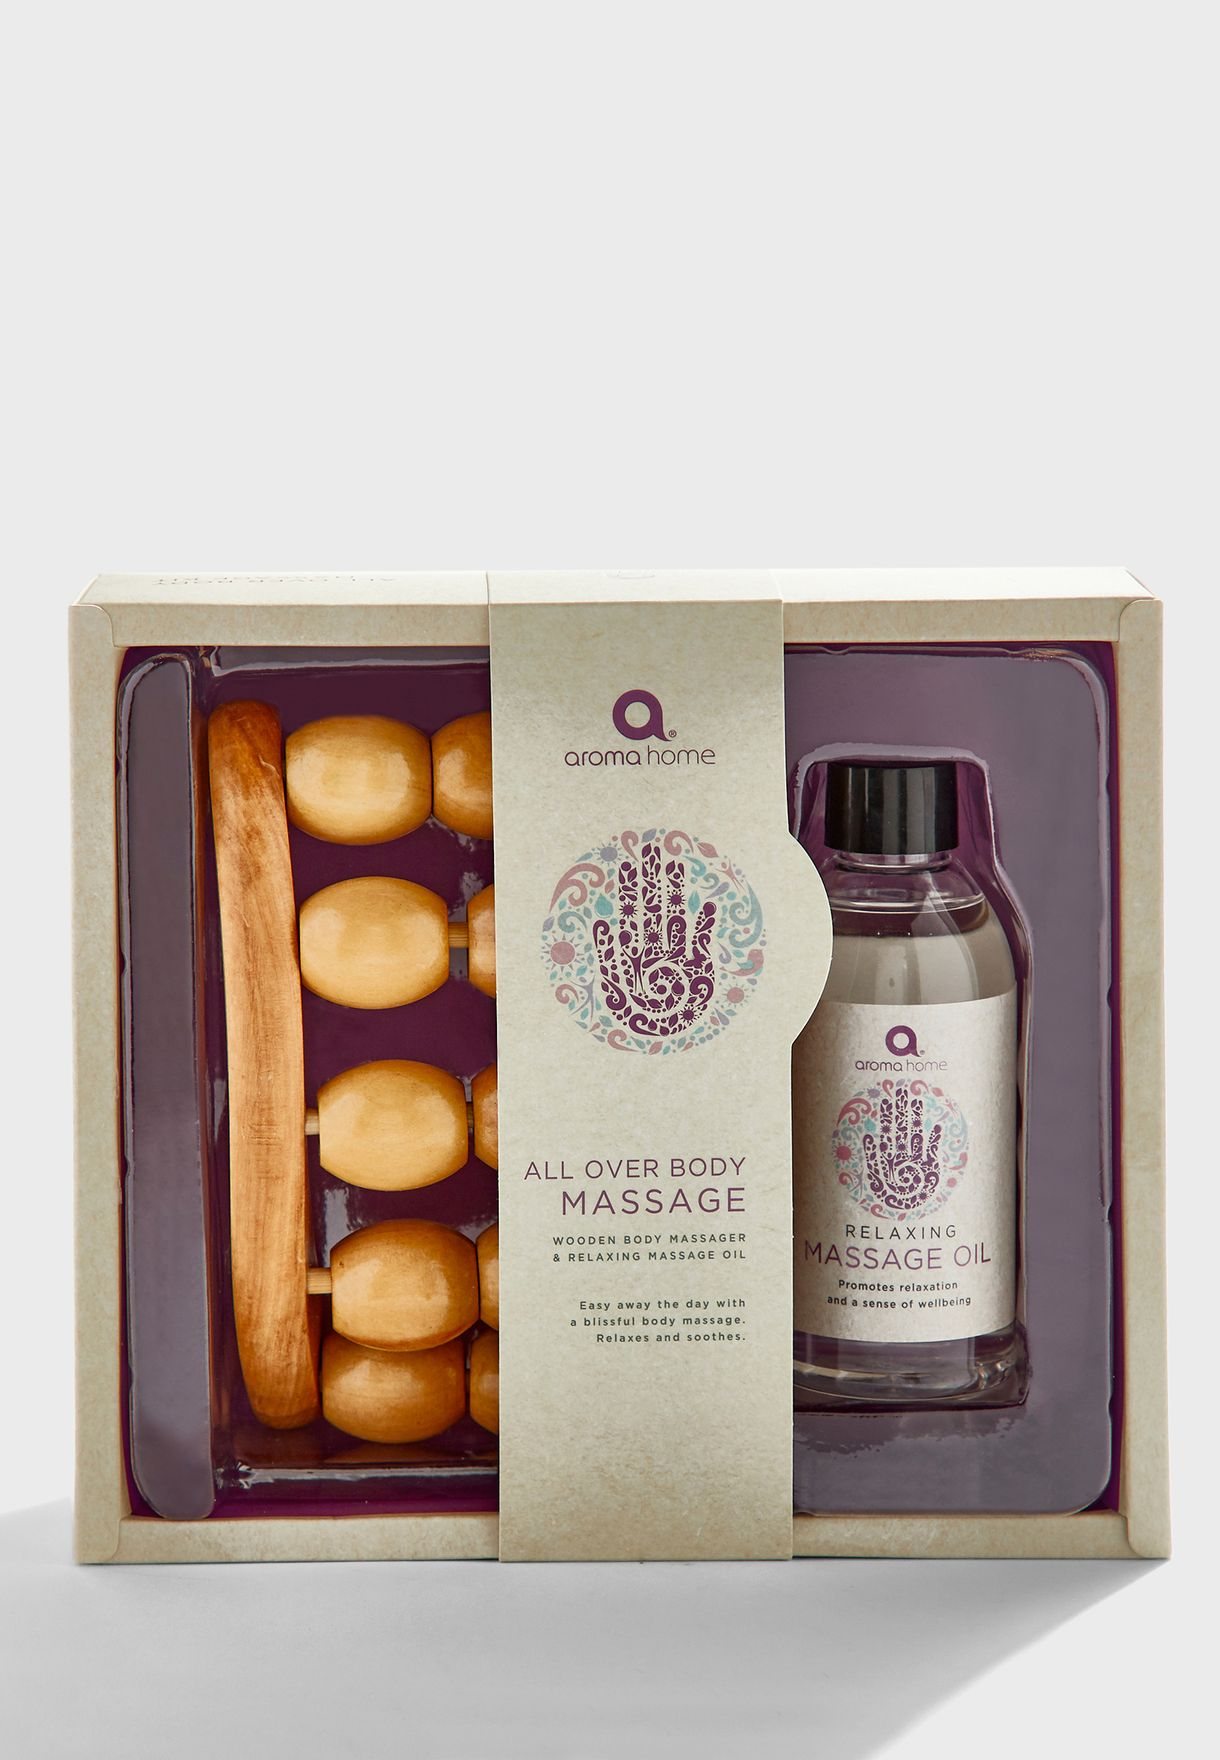 All Over Body Massage Pack